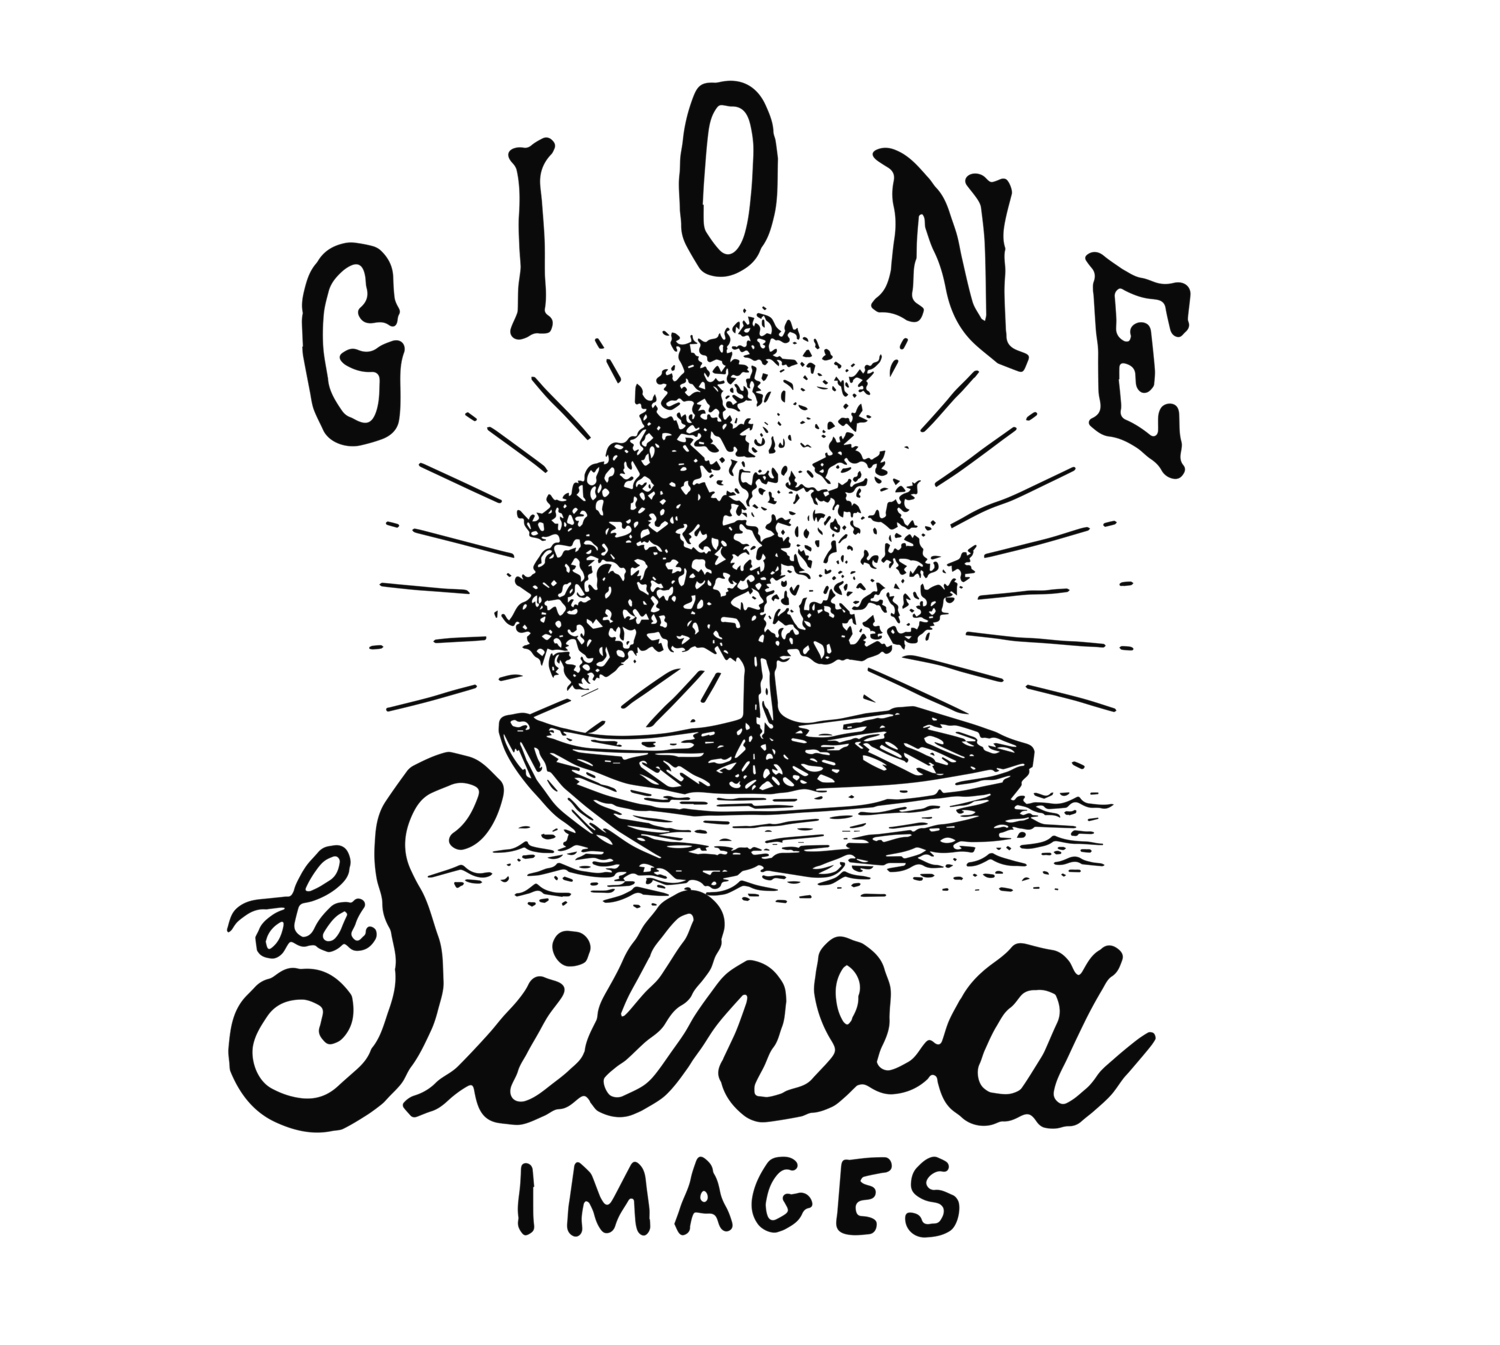 Destination Wedding Photographer and Videographer London, UK and Worldwide | Gione da Silva